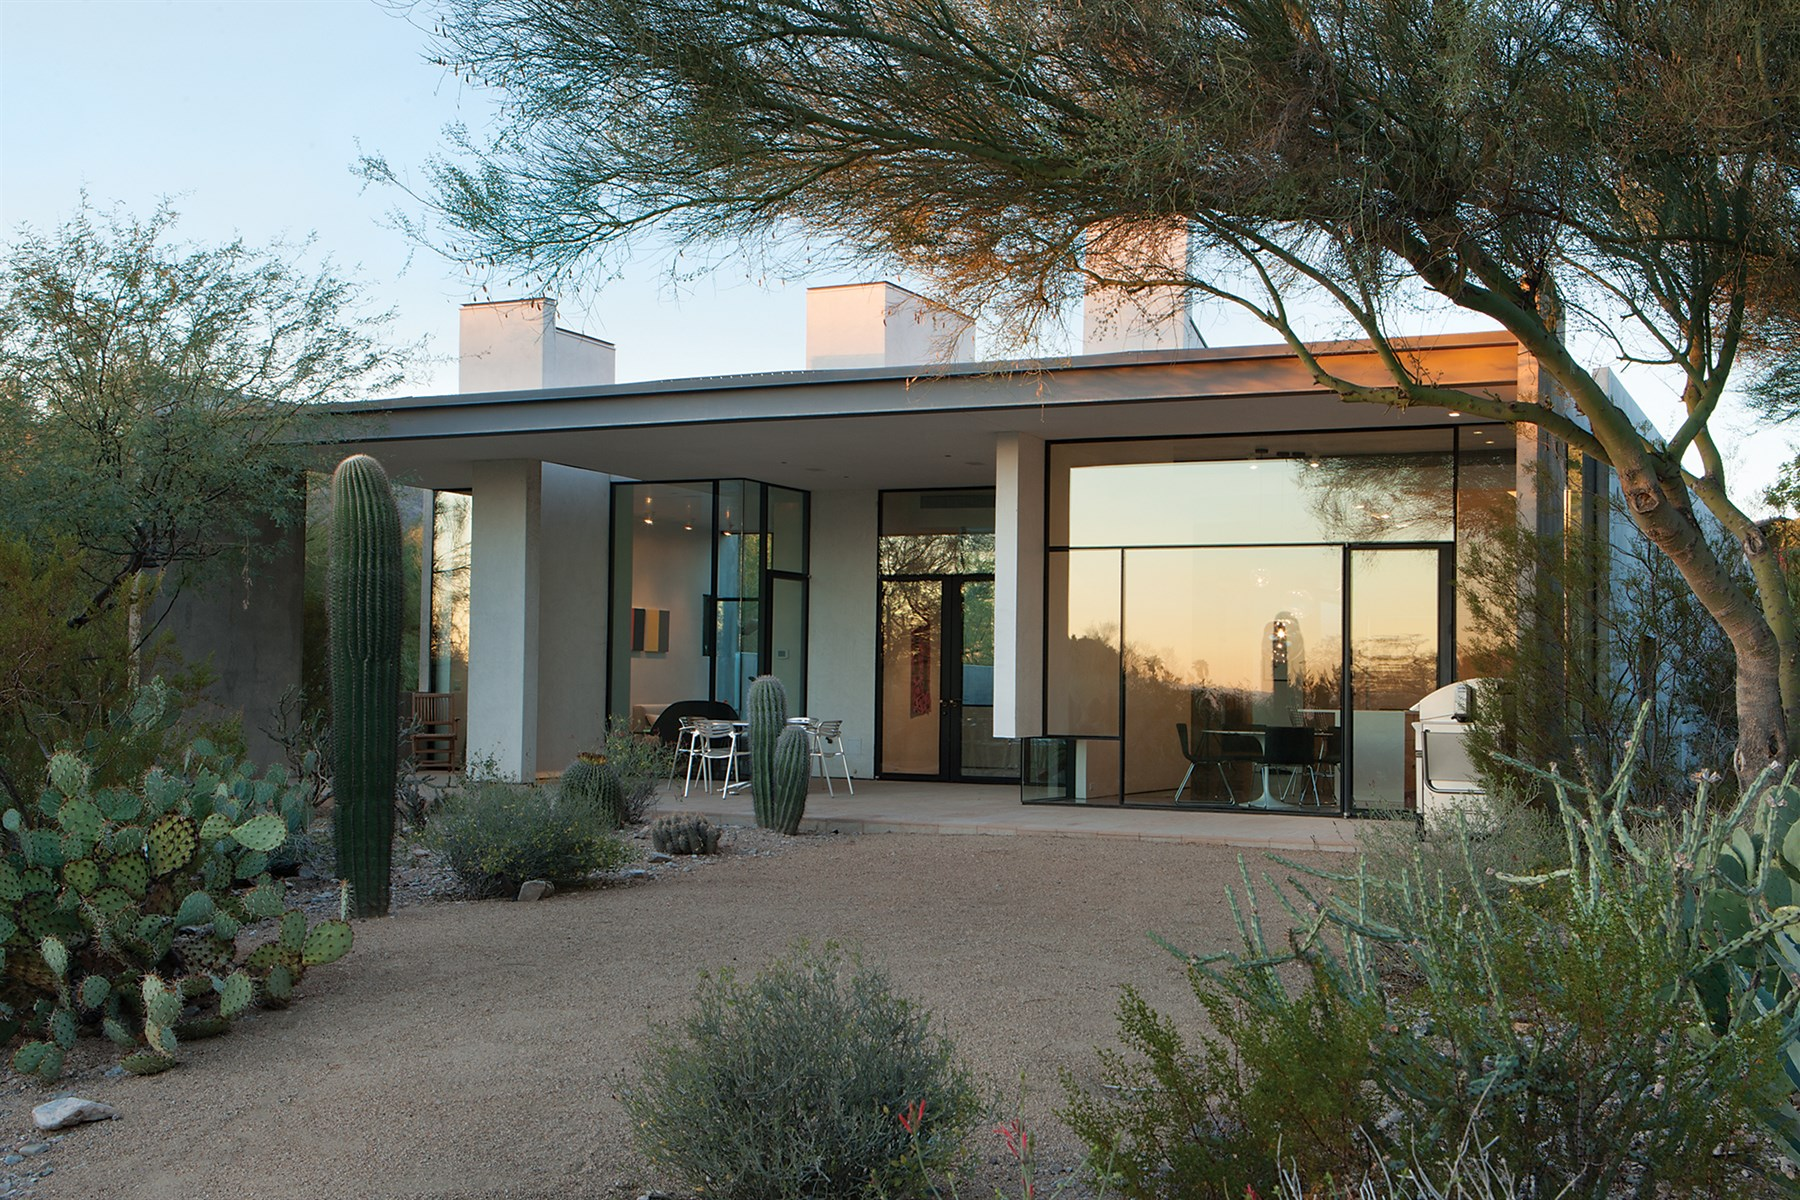 Maison unifamiliale pour l Vente à The Planar House 6737 N 48th St Paradise Valley, Arizona, 85253 États-Unis